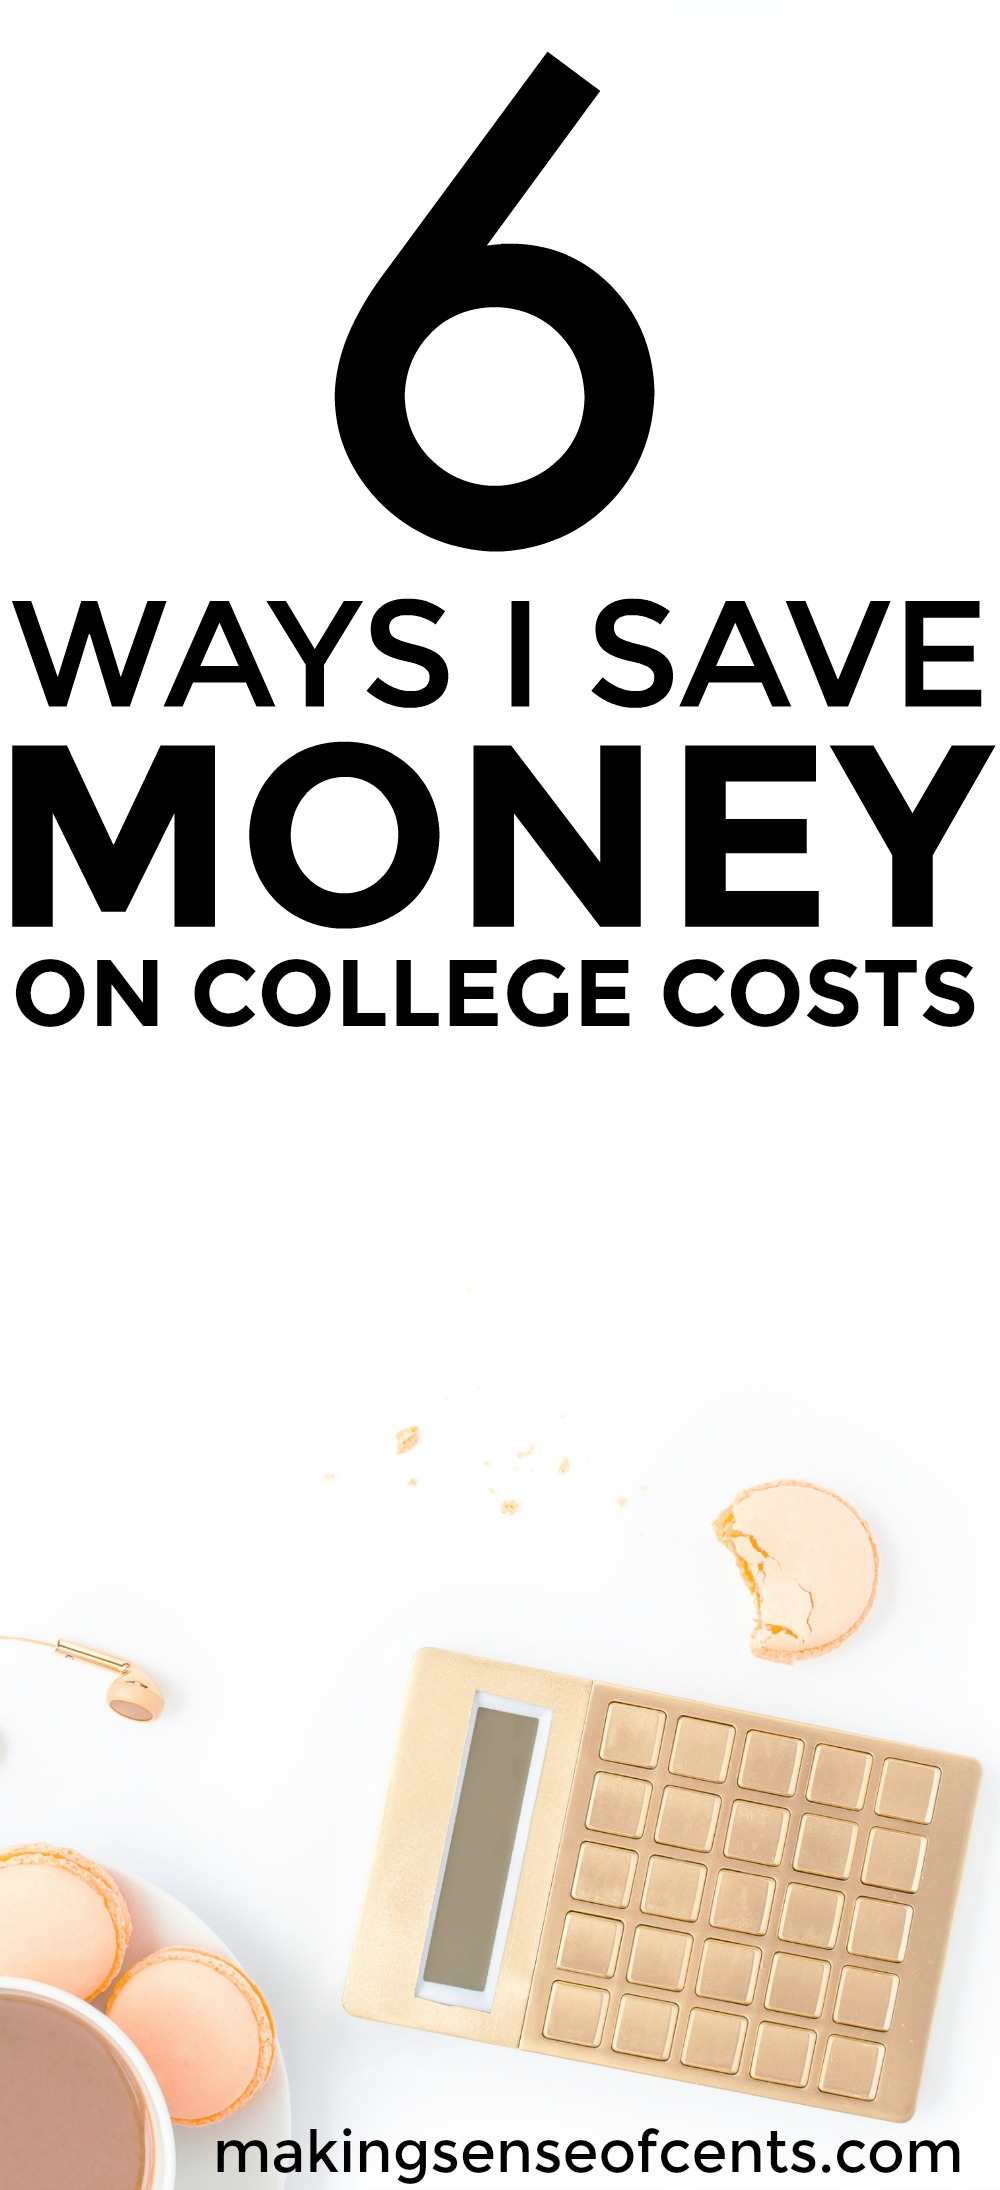 Check out this list of ways to save money on college costs. This is a great list!